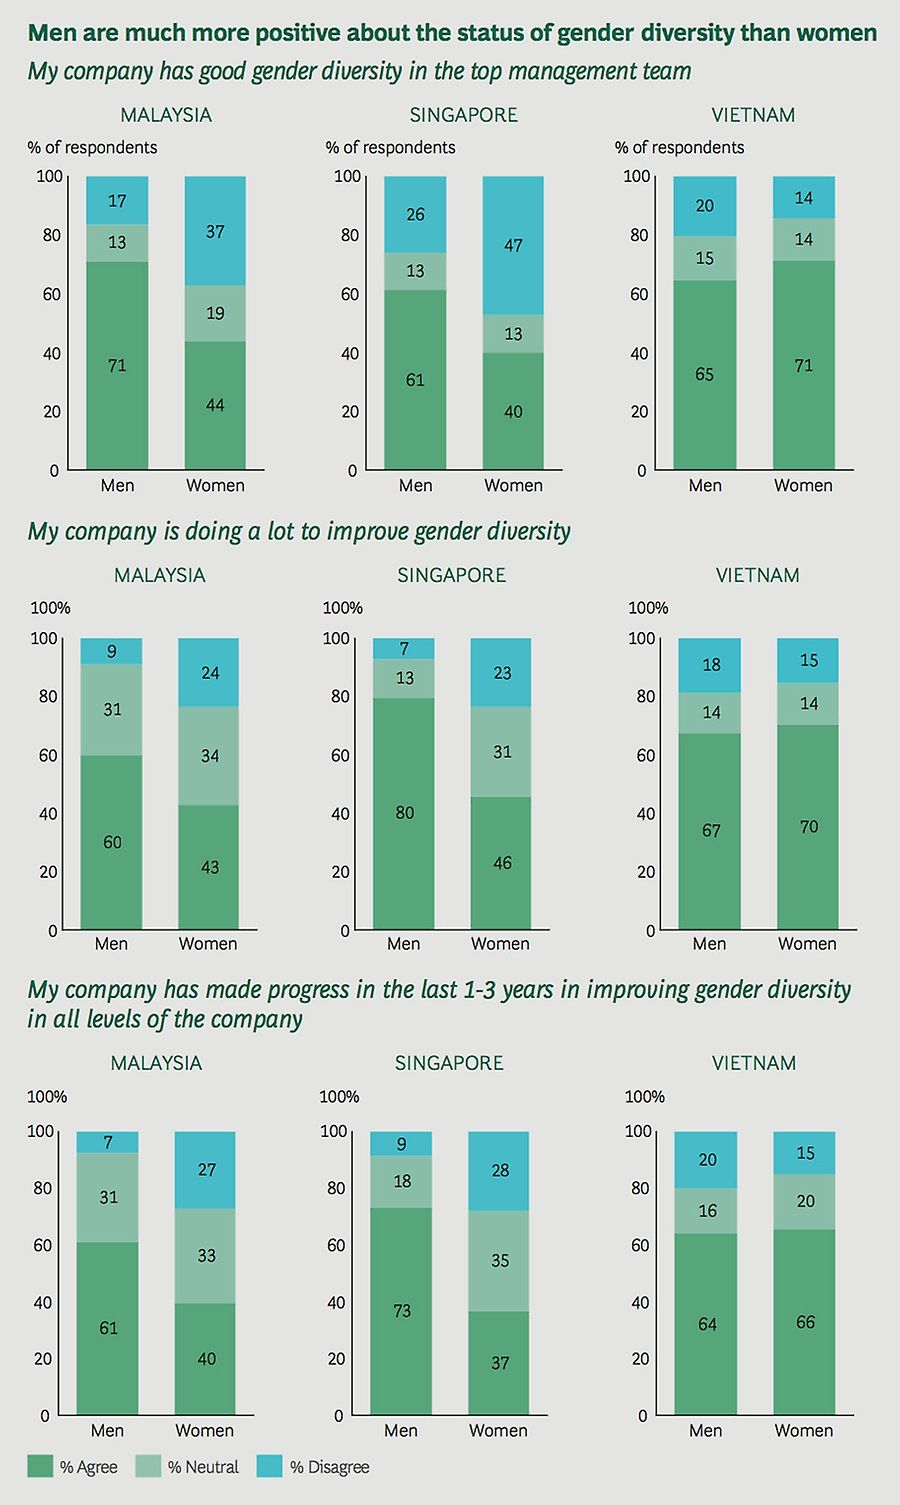 Men are much more positive about the status of gender diversity than women